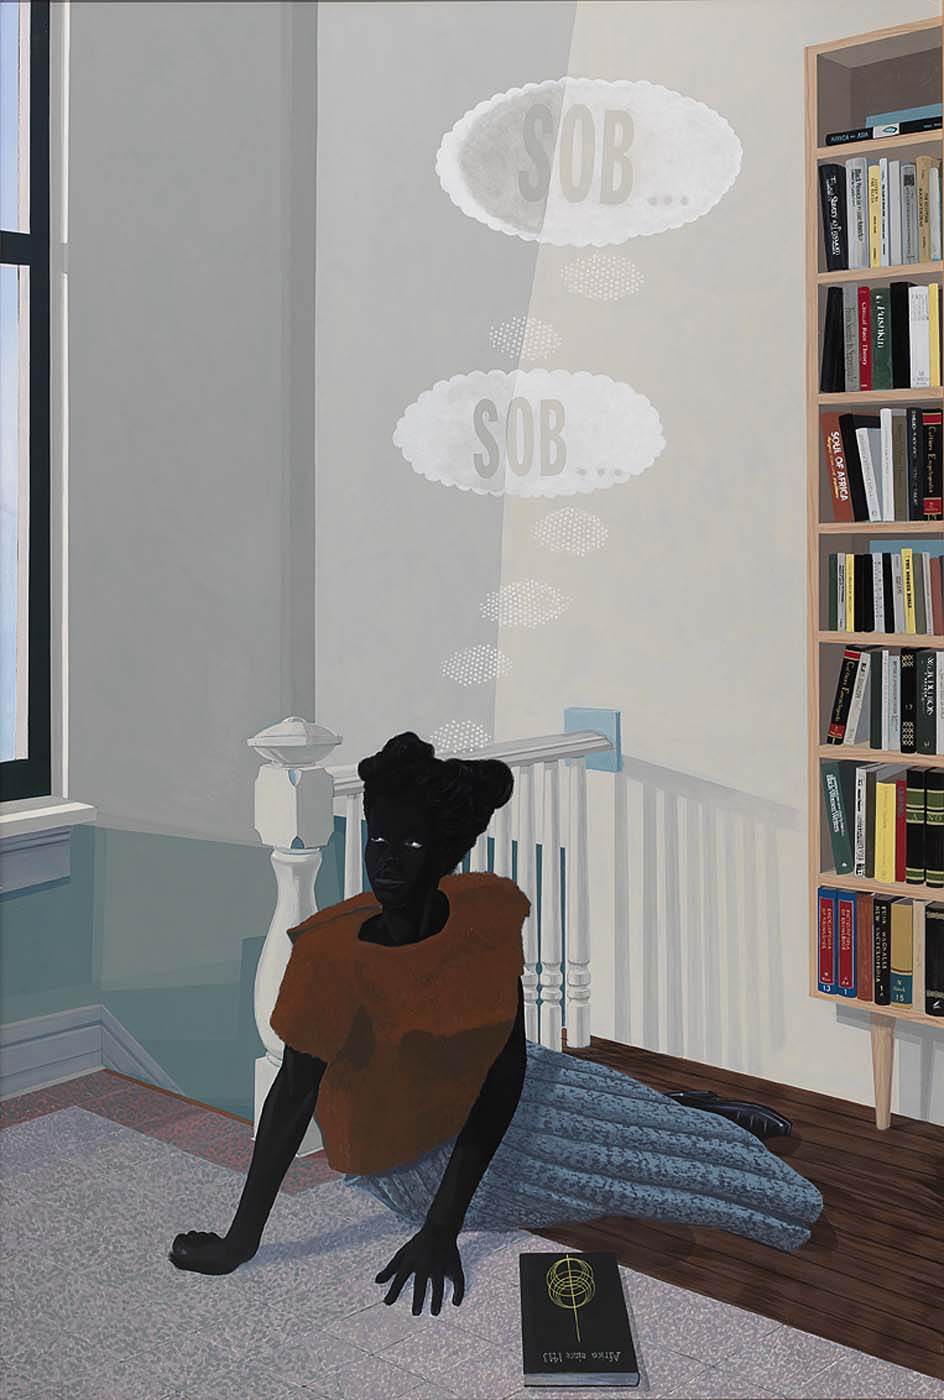 SOB, SOB, Kerry James Marshall, 2003, acrylic on fiberglass 108 x 72 inches